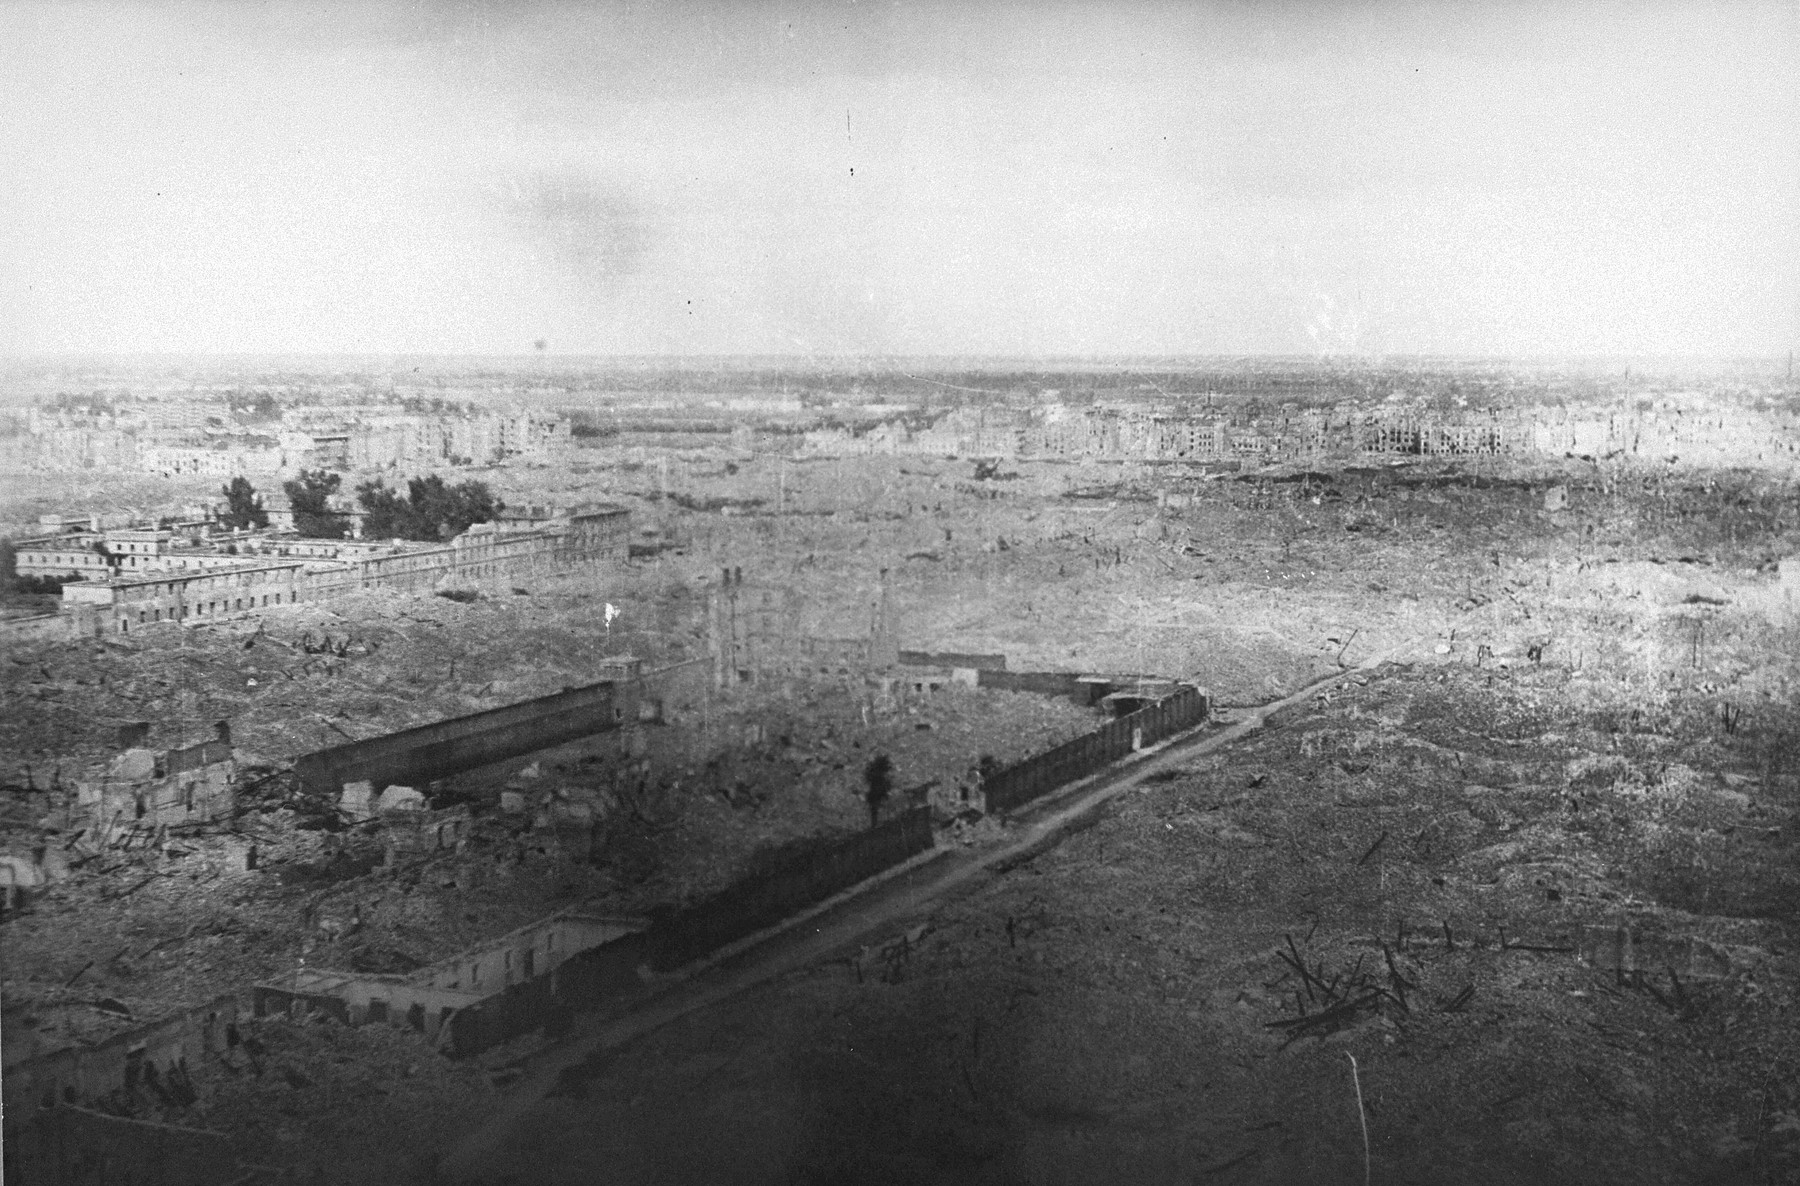 View of the ruins of the Warsaw ghetto.    Pictured in the middle are the walls of the Pawiak prison.  Visible on the far left is the Gesiowka prison.